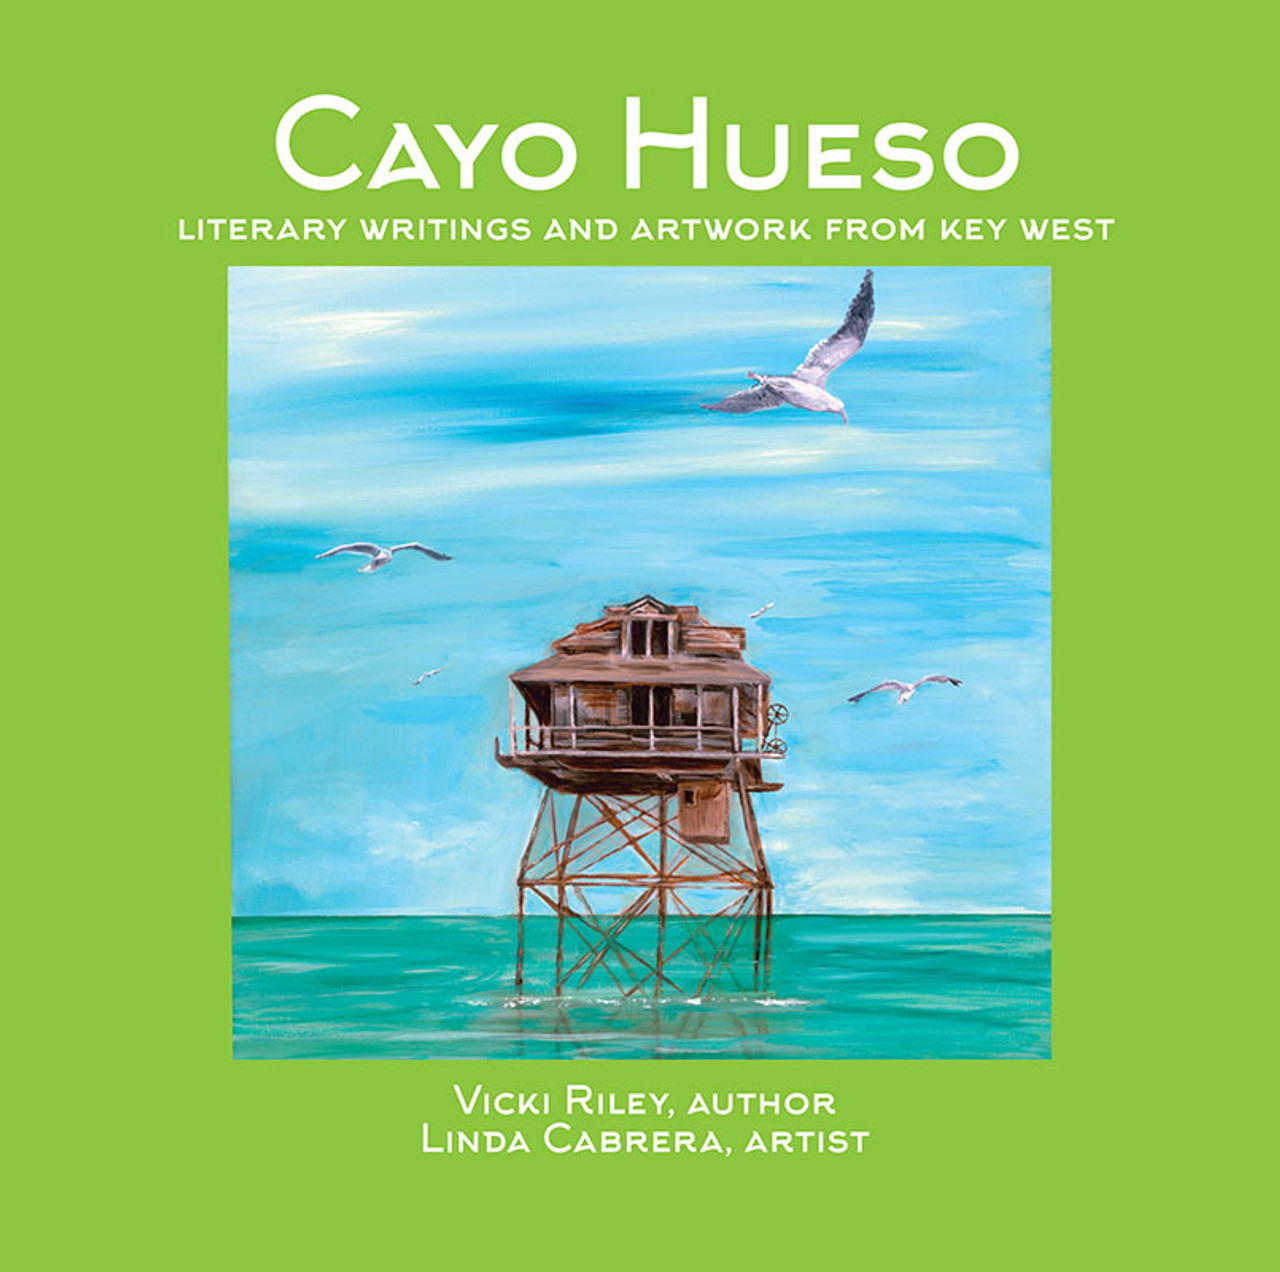 Cayo Hueso: Literary Writings and Artwork from Key West